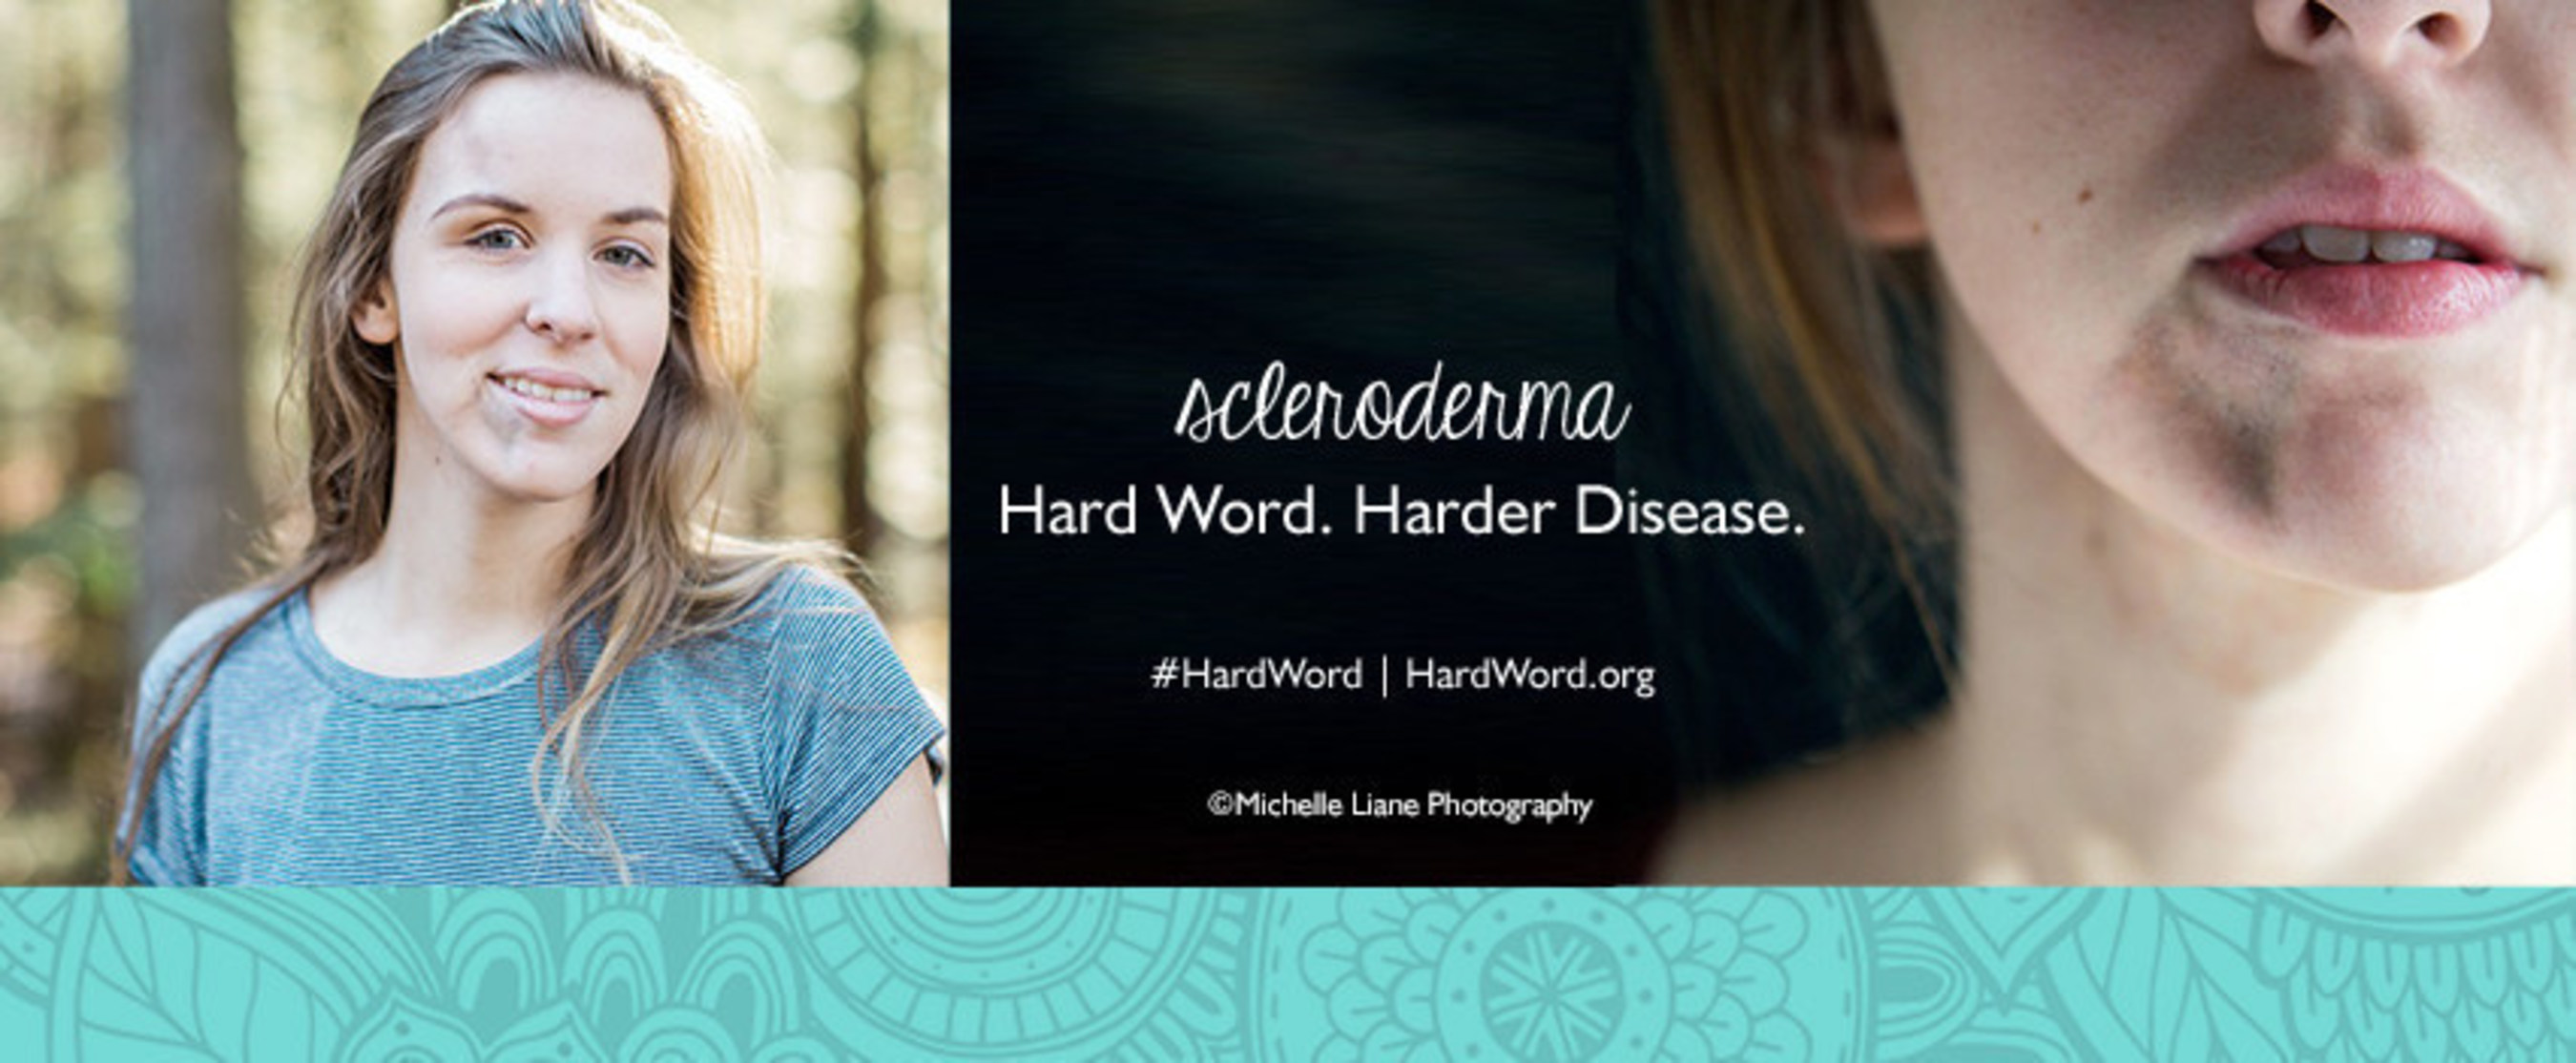 scleroderma.  hard word.  harder disease.